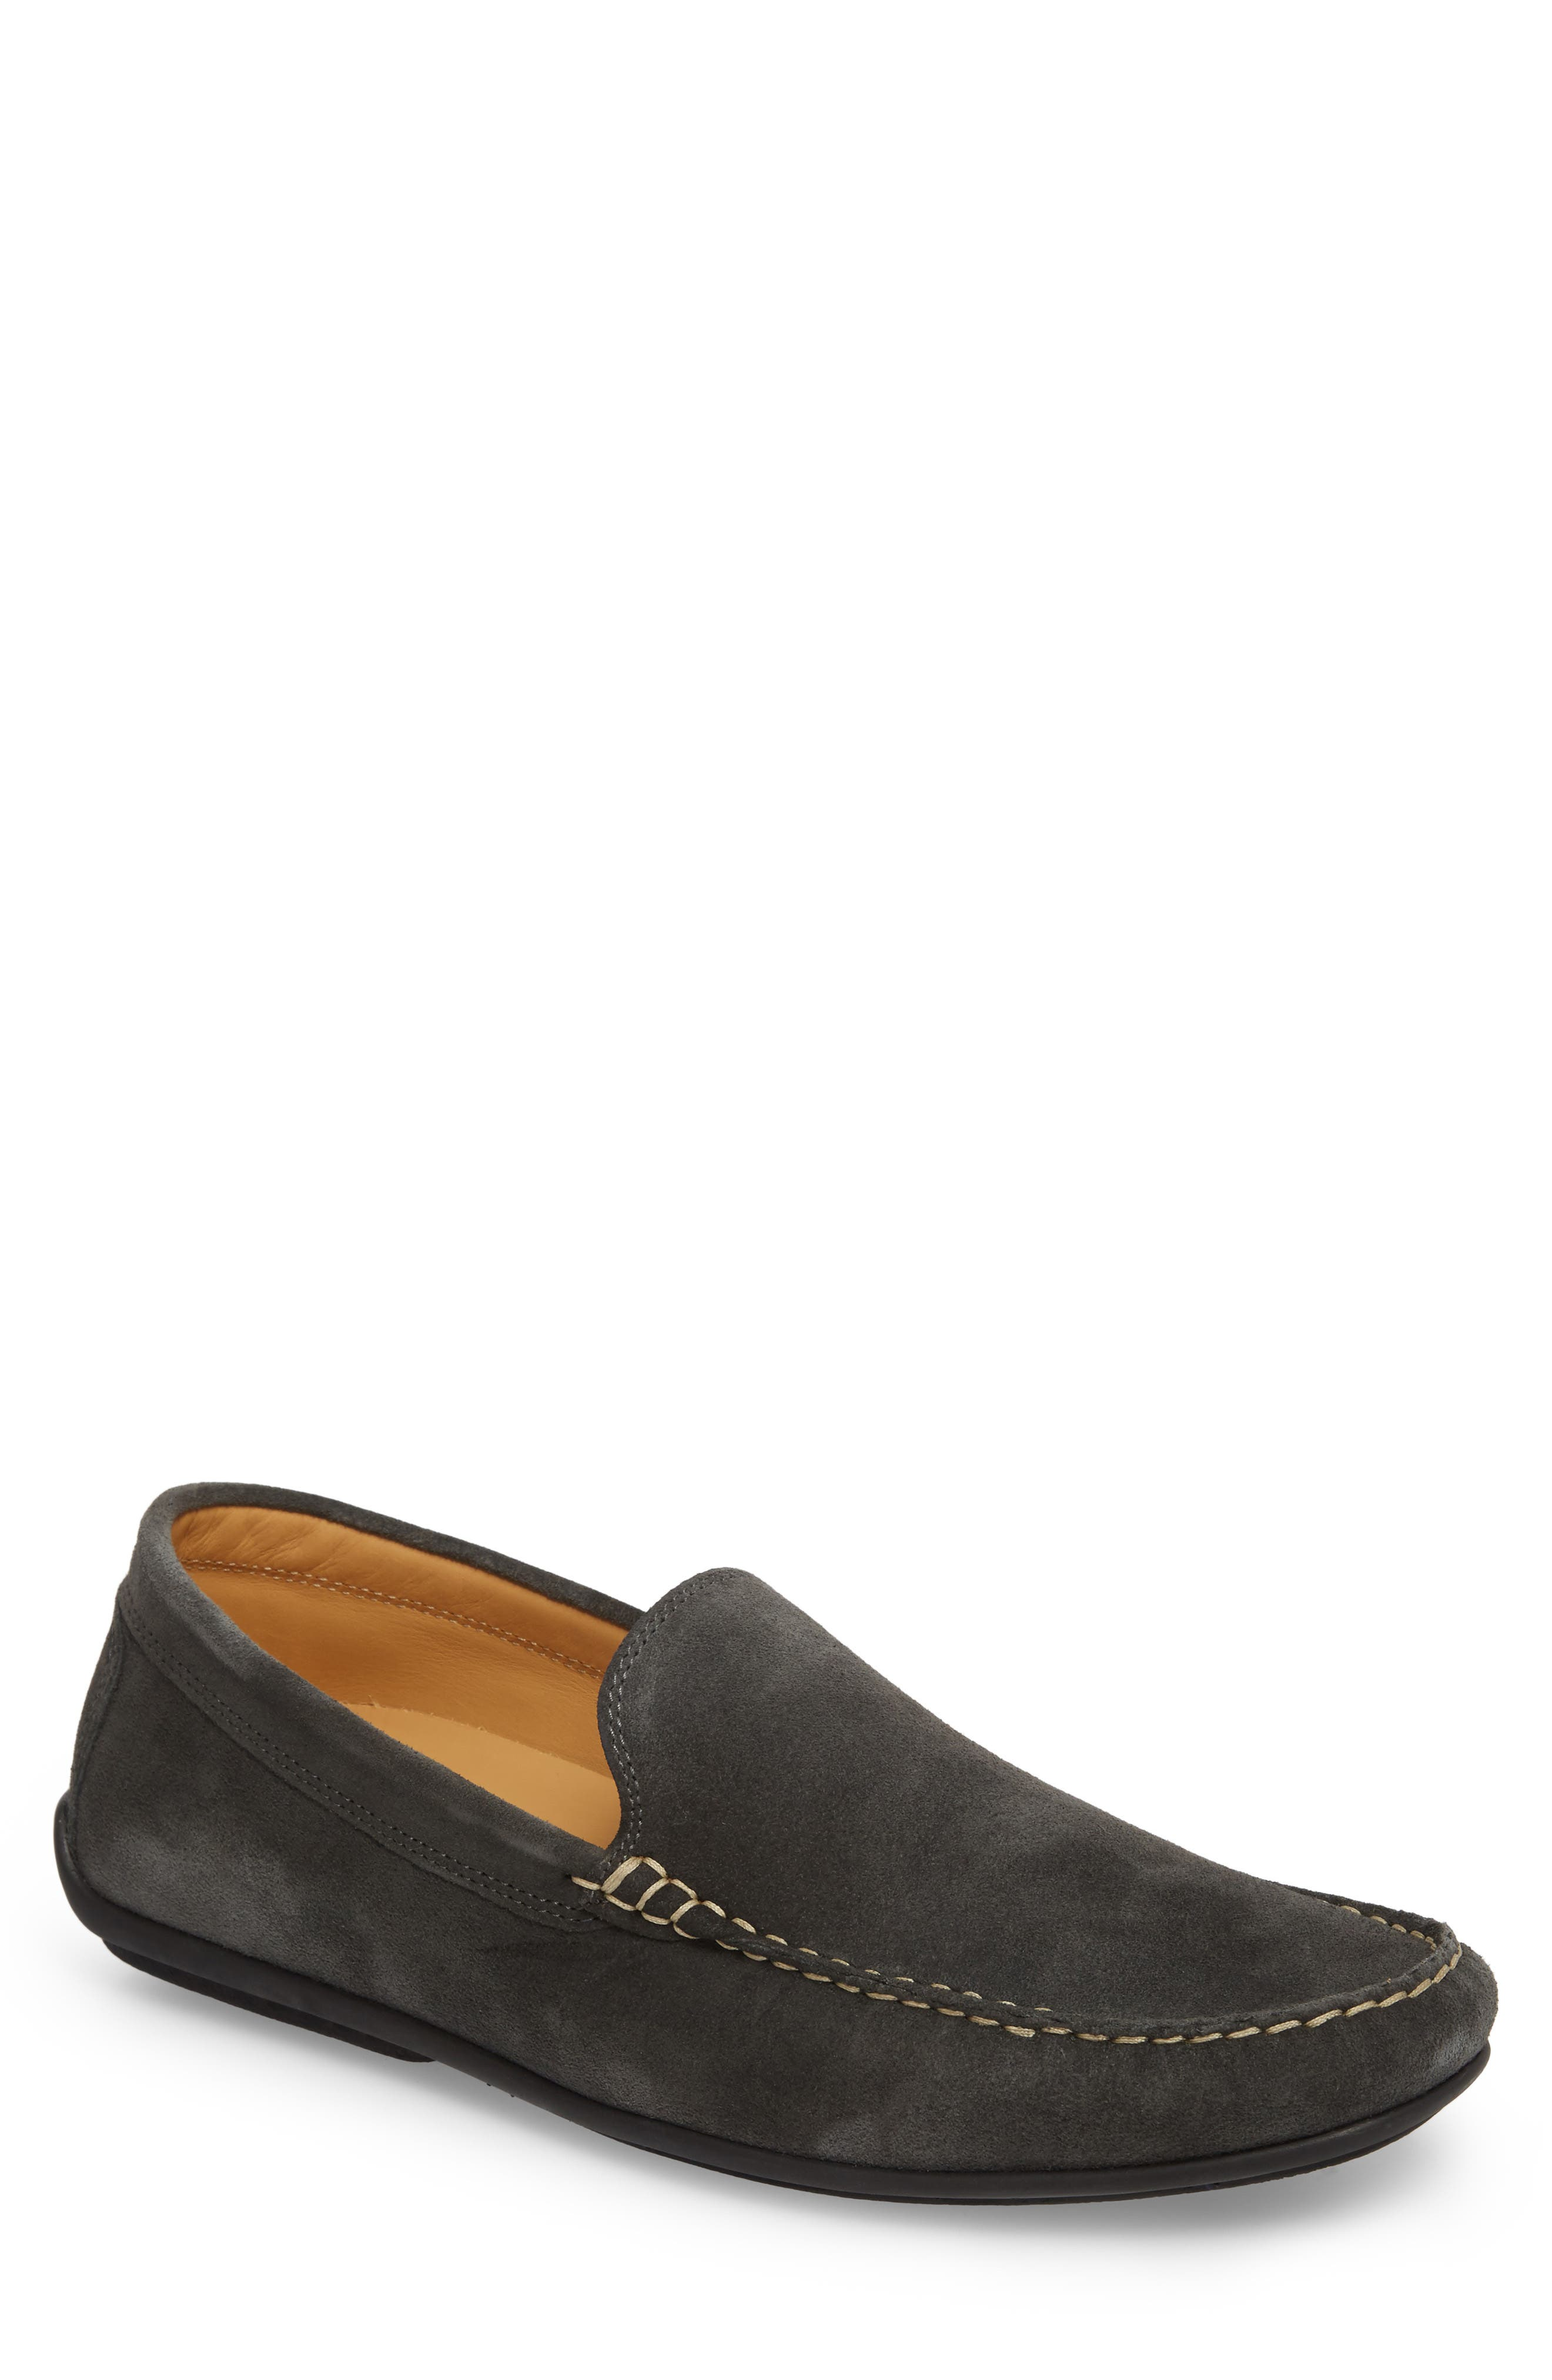 Austen Heller Greyhounds Loafer (Men)